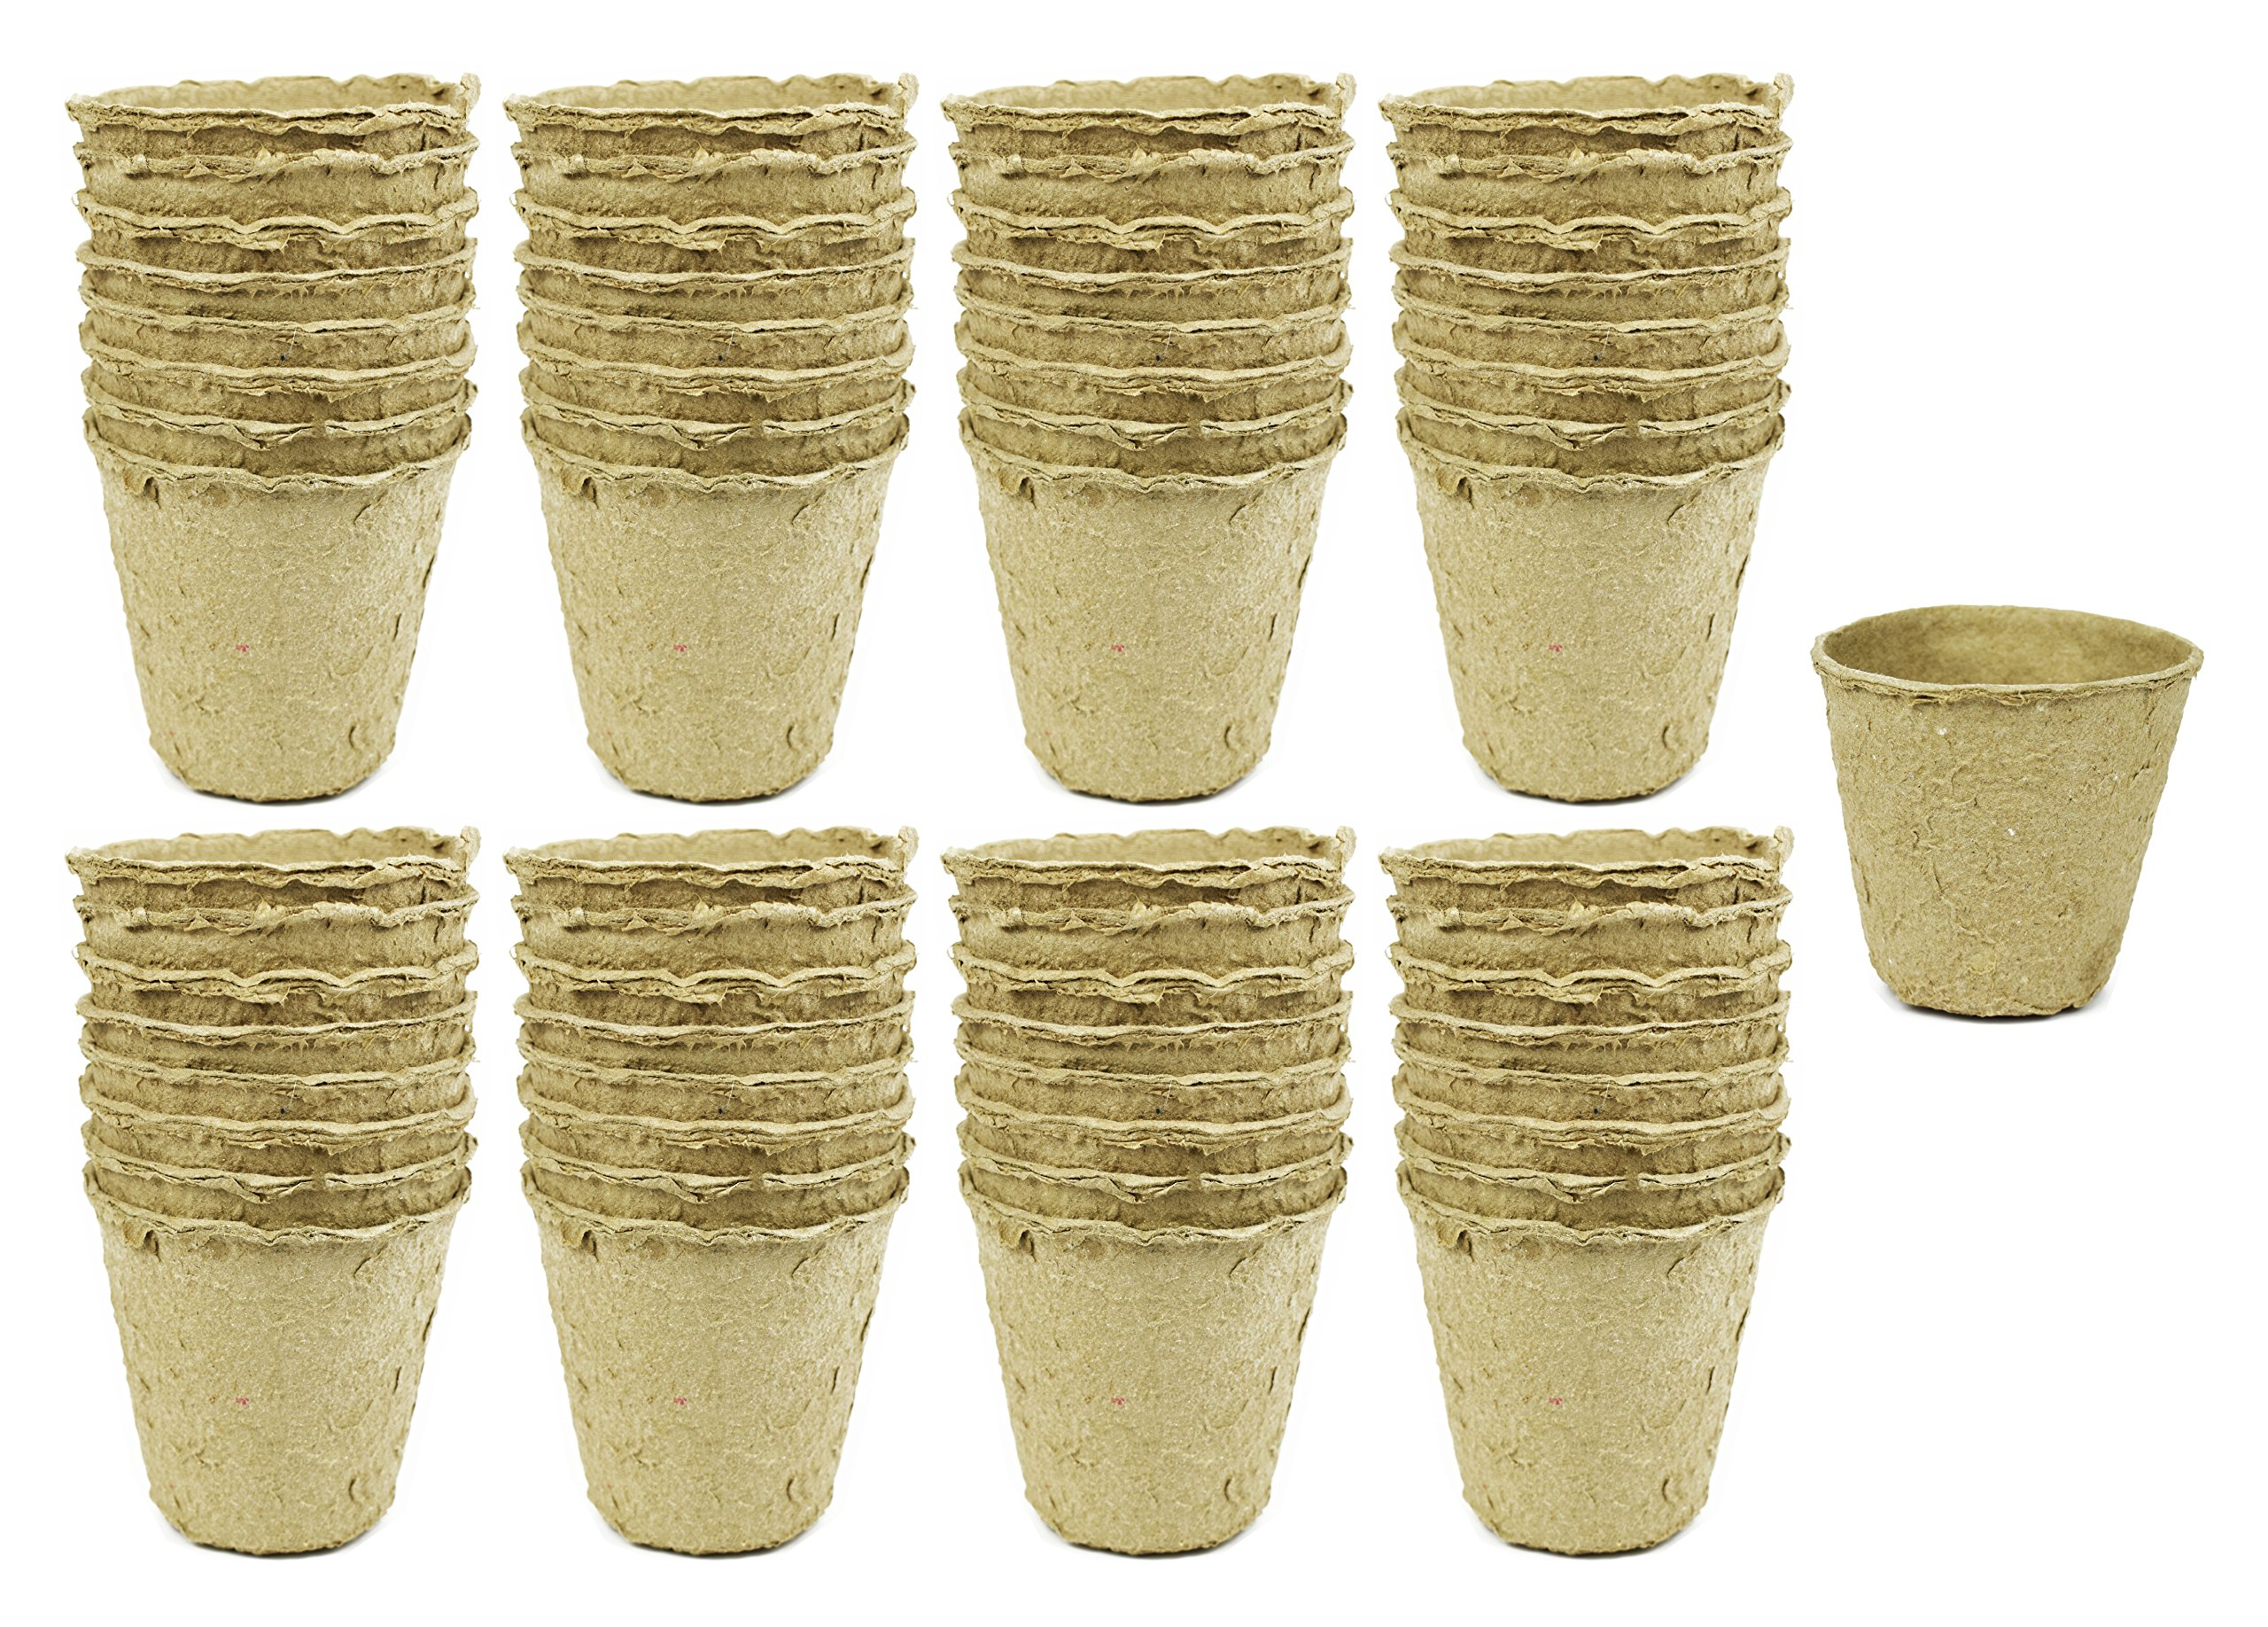 """Set of 64 Med Biodegradable Eco Friendly Peat Pots! 3"""" 12 Pot Tray - Recycled Non Bleached Peat Pots Perfect for Seed Germination! No Transplanting Required - No More Damaged Roots!"""